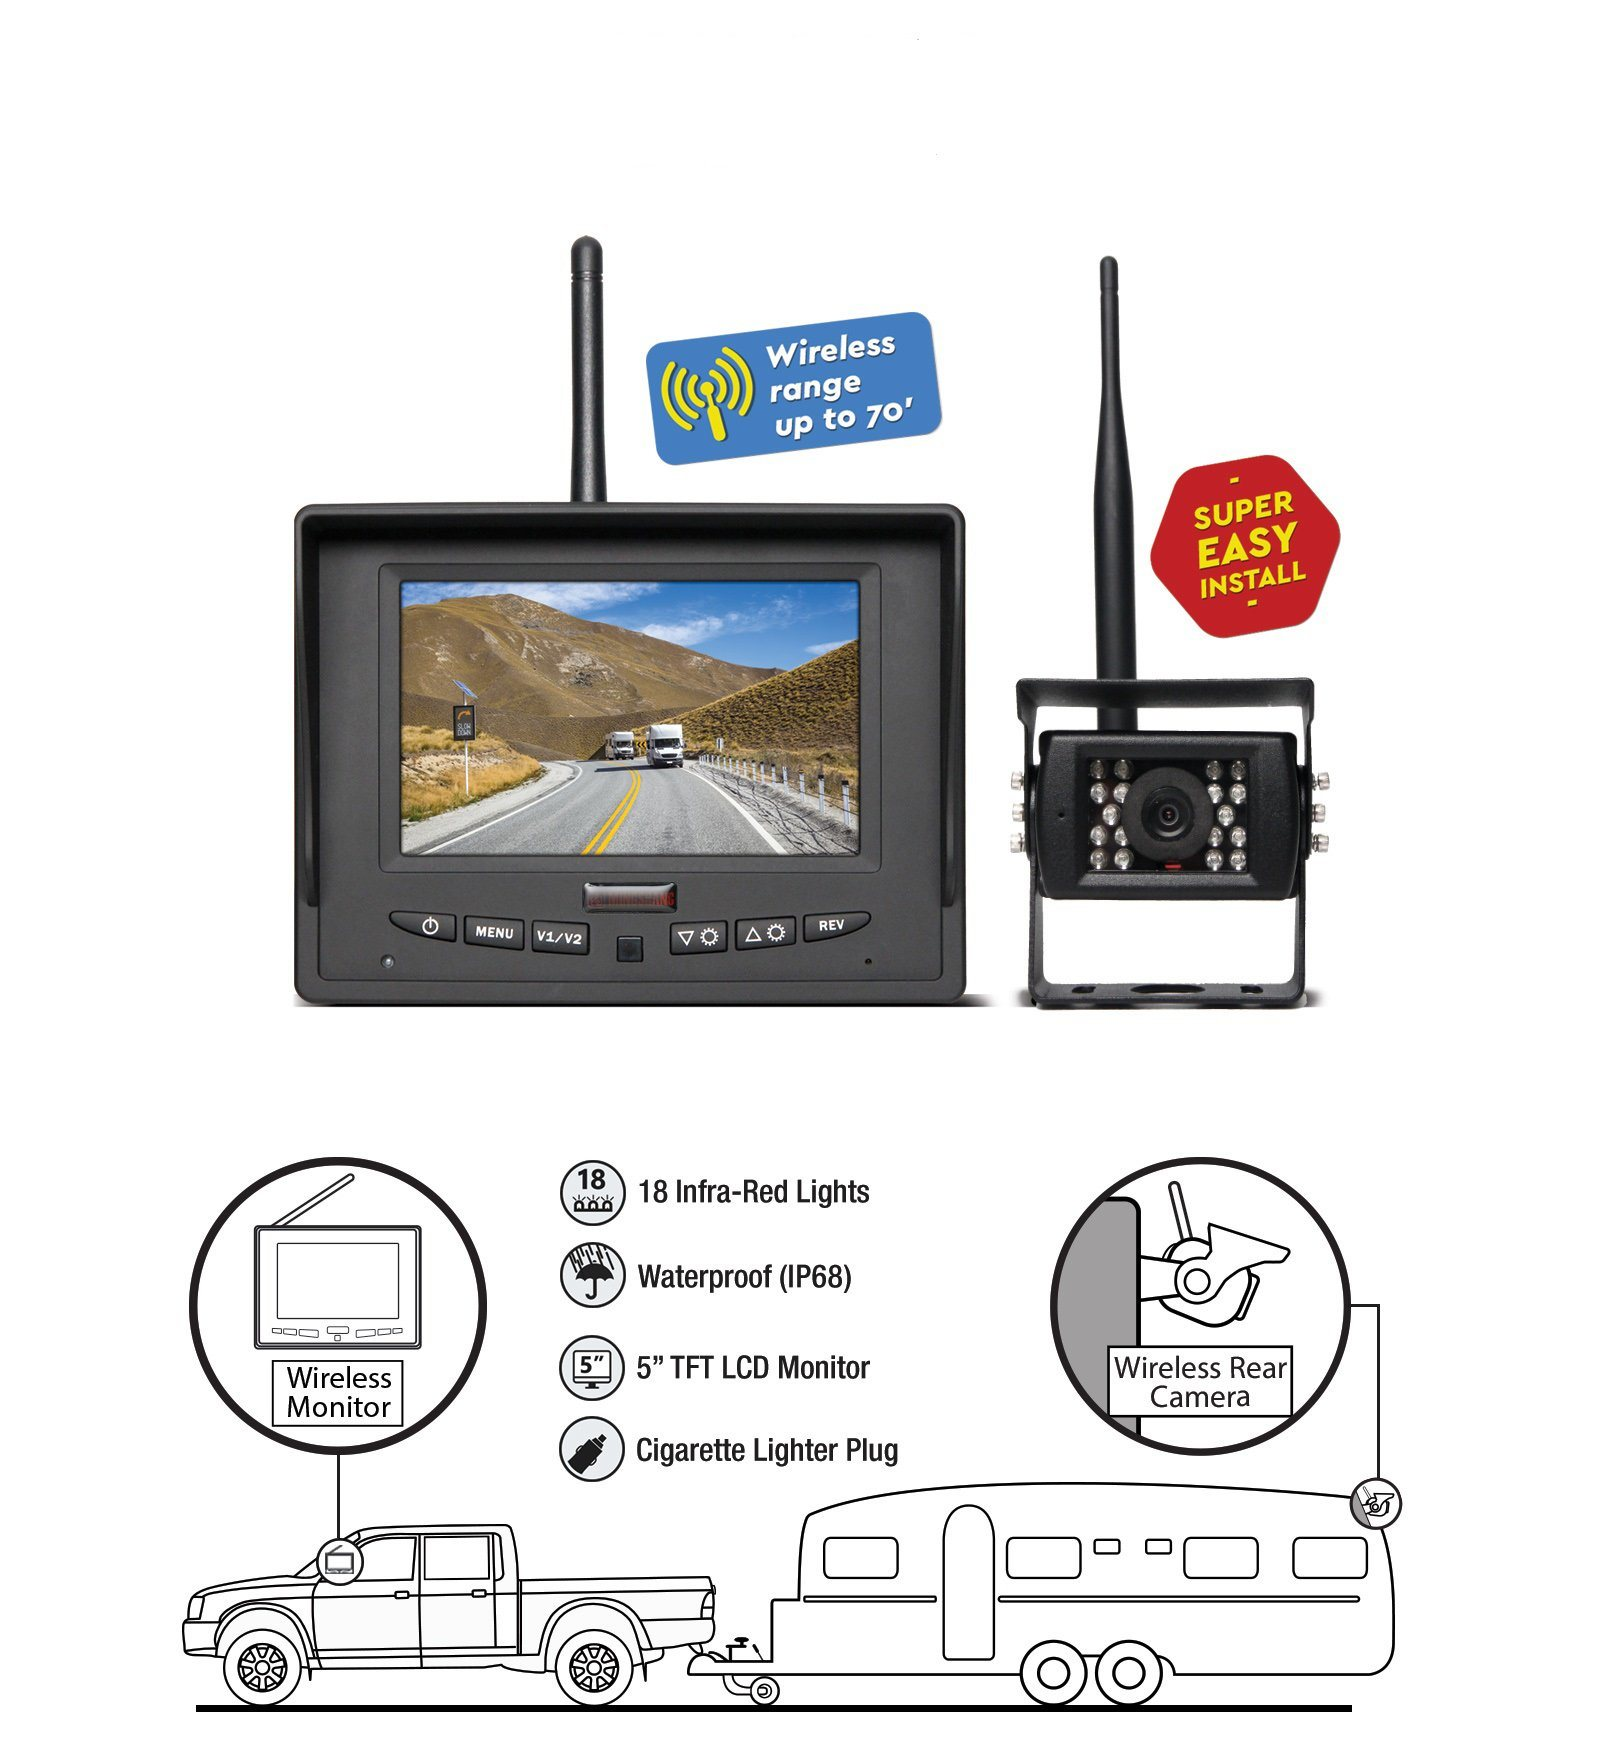 2.4G 5-Inch Wireless System Car Rear View Camera for Farm Tractor, Cultivator, Trailer, Truck